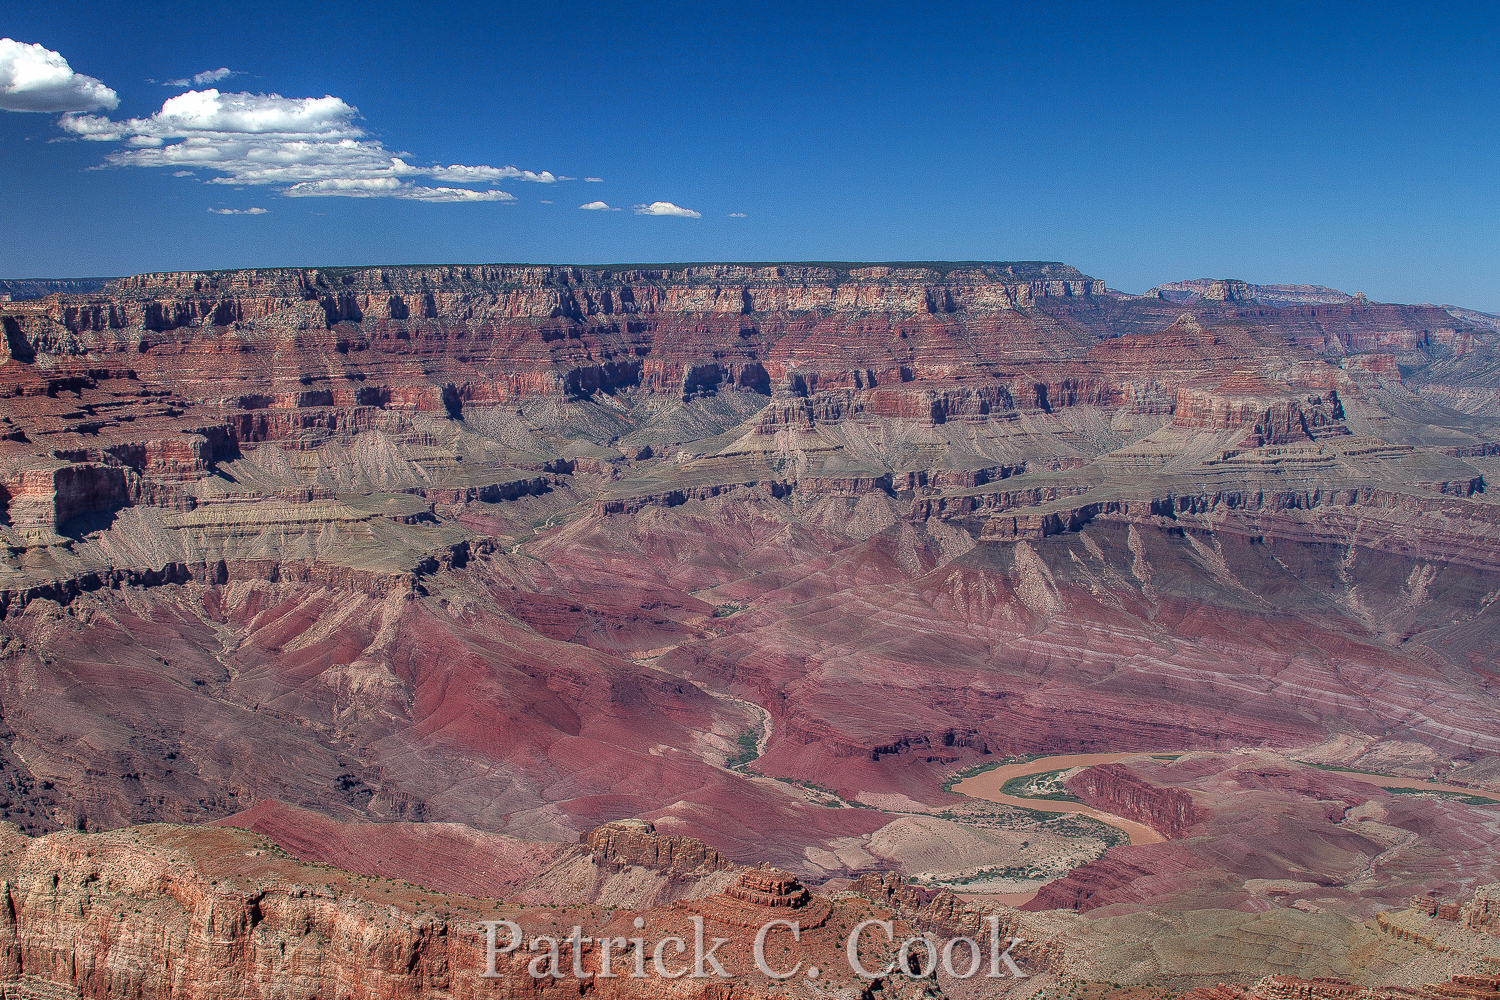 The Grand Canyon at Lipan Point, South Rim.